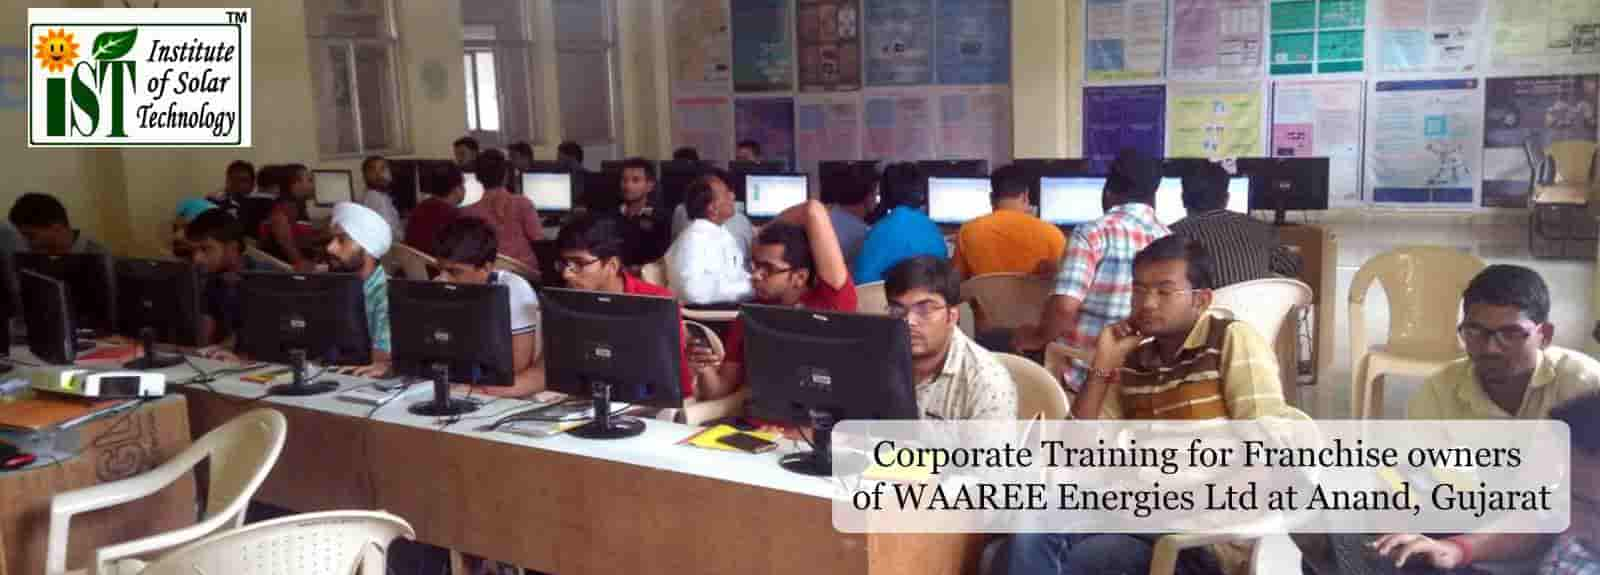 Corporate Training for WAAREE Energies Ltd